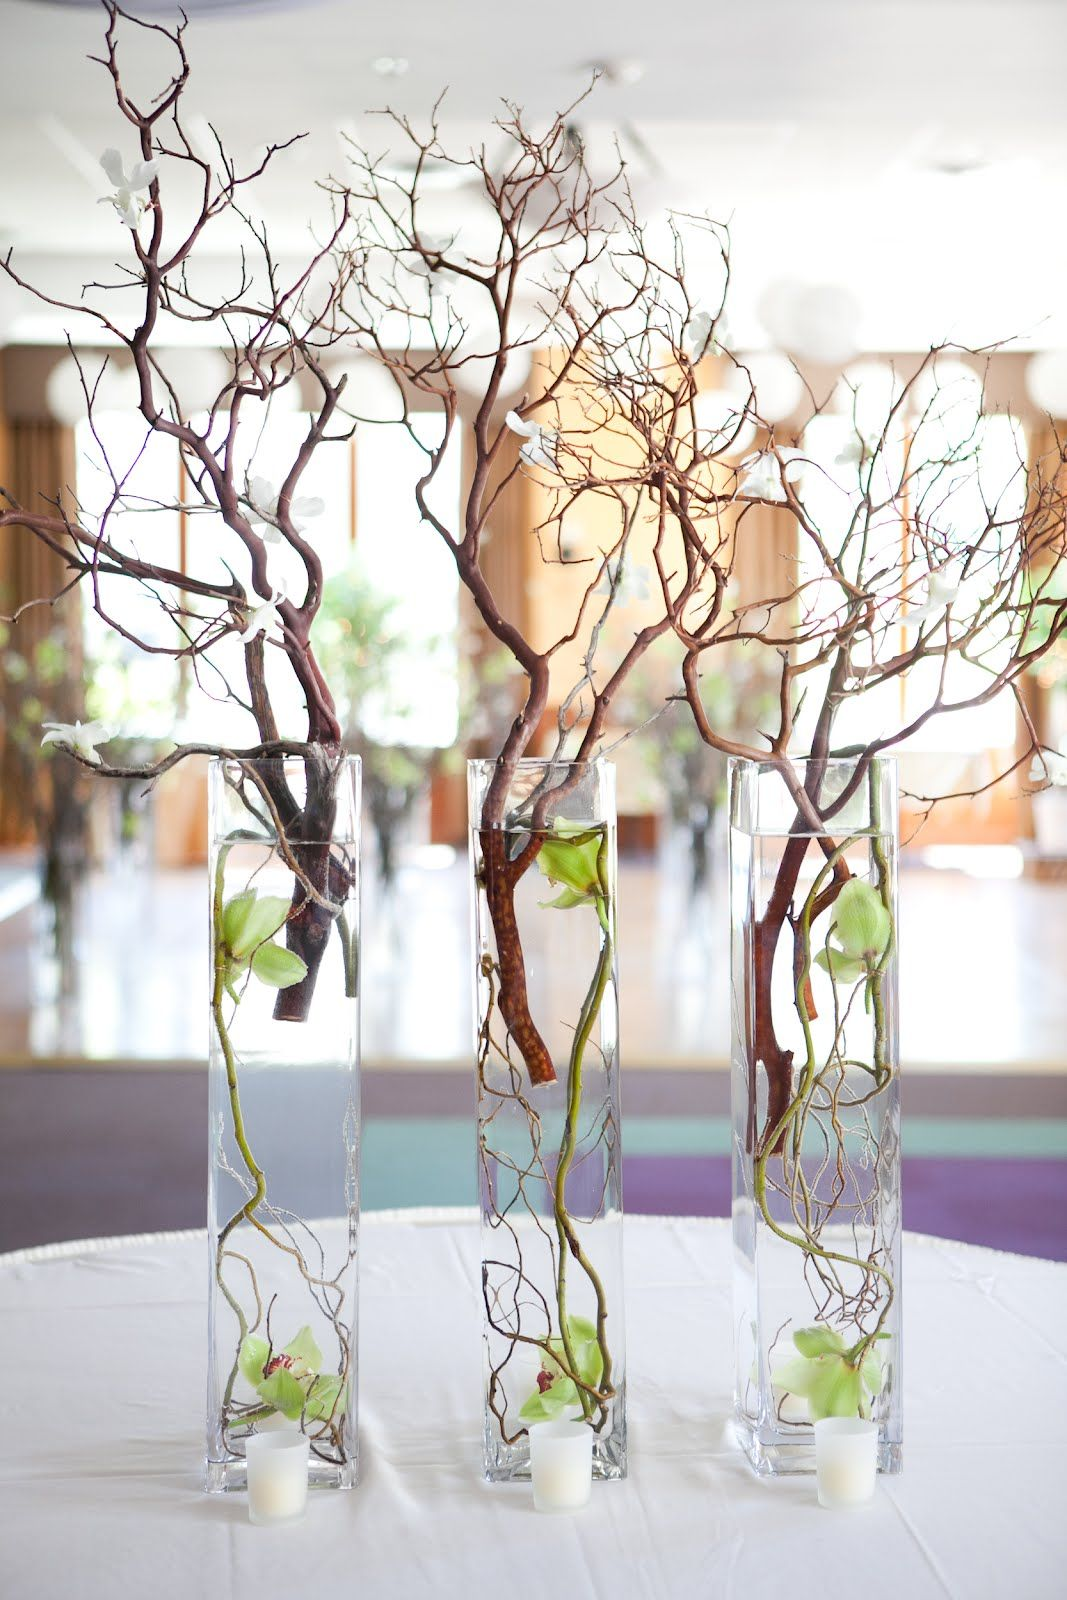 Tall Curly Willow Centerpiece Hanging Lights Google Search Table Setting Decor Curly Willow Centerpieces Beautiful Table Settings